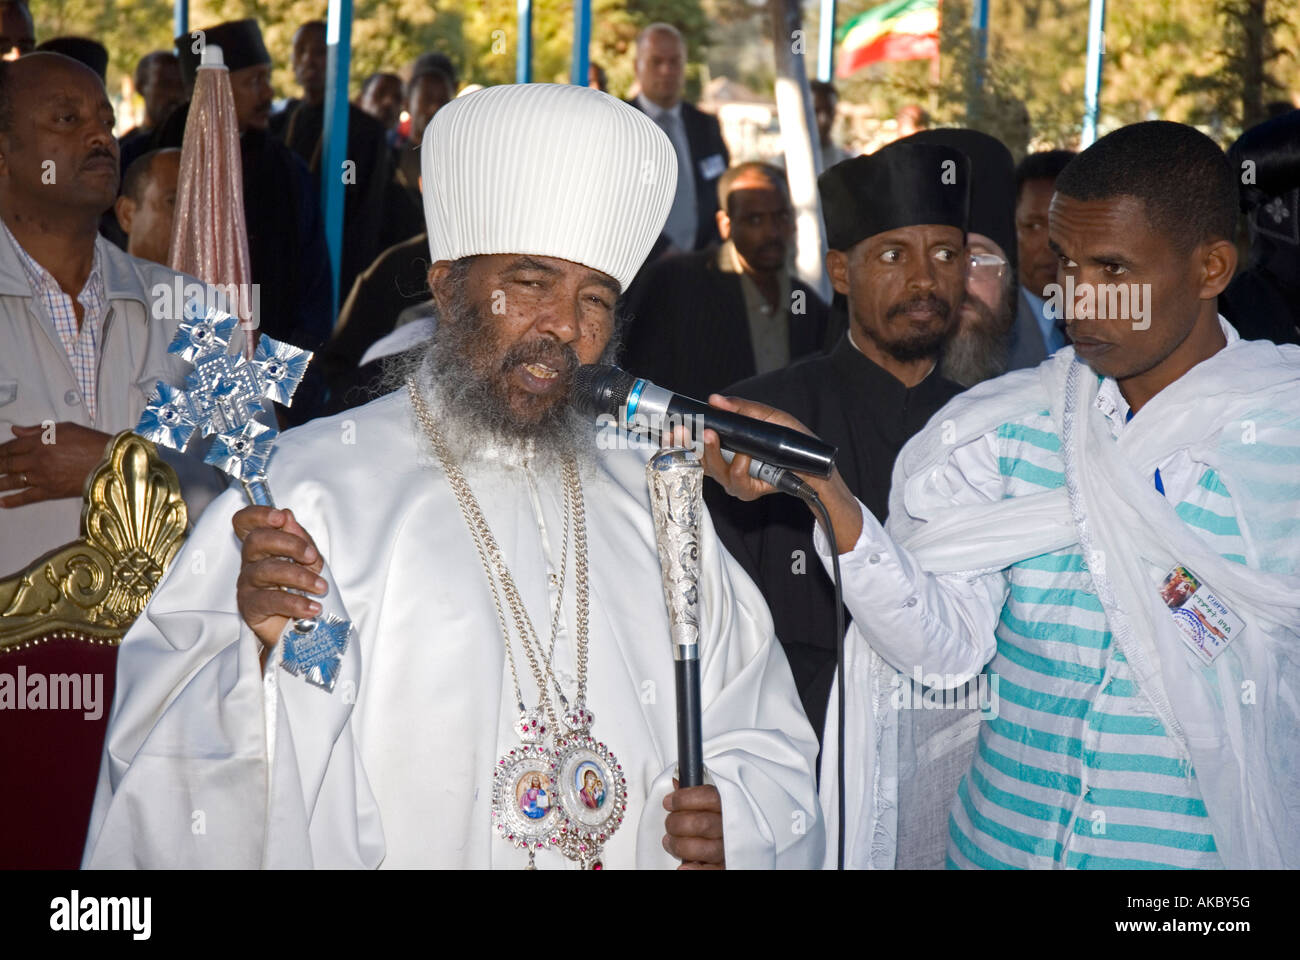 Ethiopian Orthodox Patriarch being interviewed during Timkat (Epiphany) celebrations, Addis Abeba, Ethiopia - Stock Image